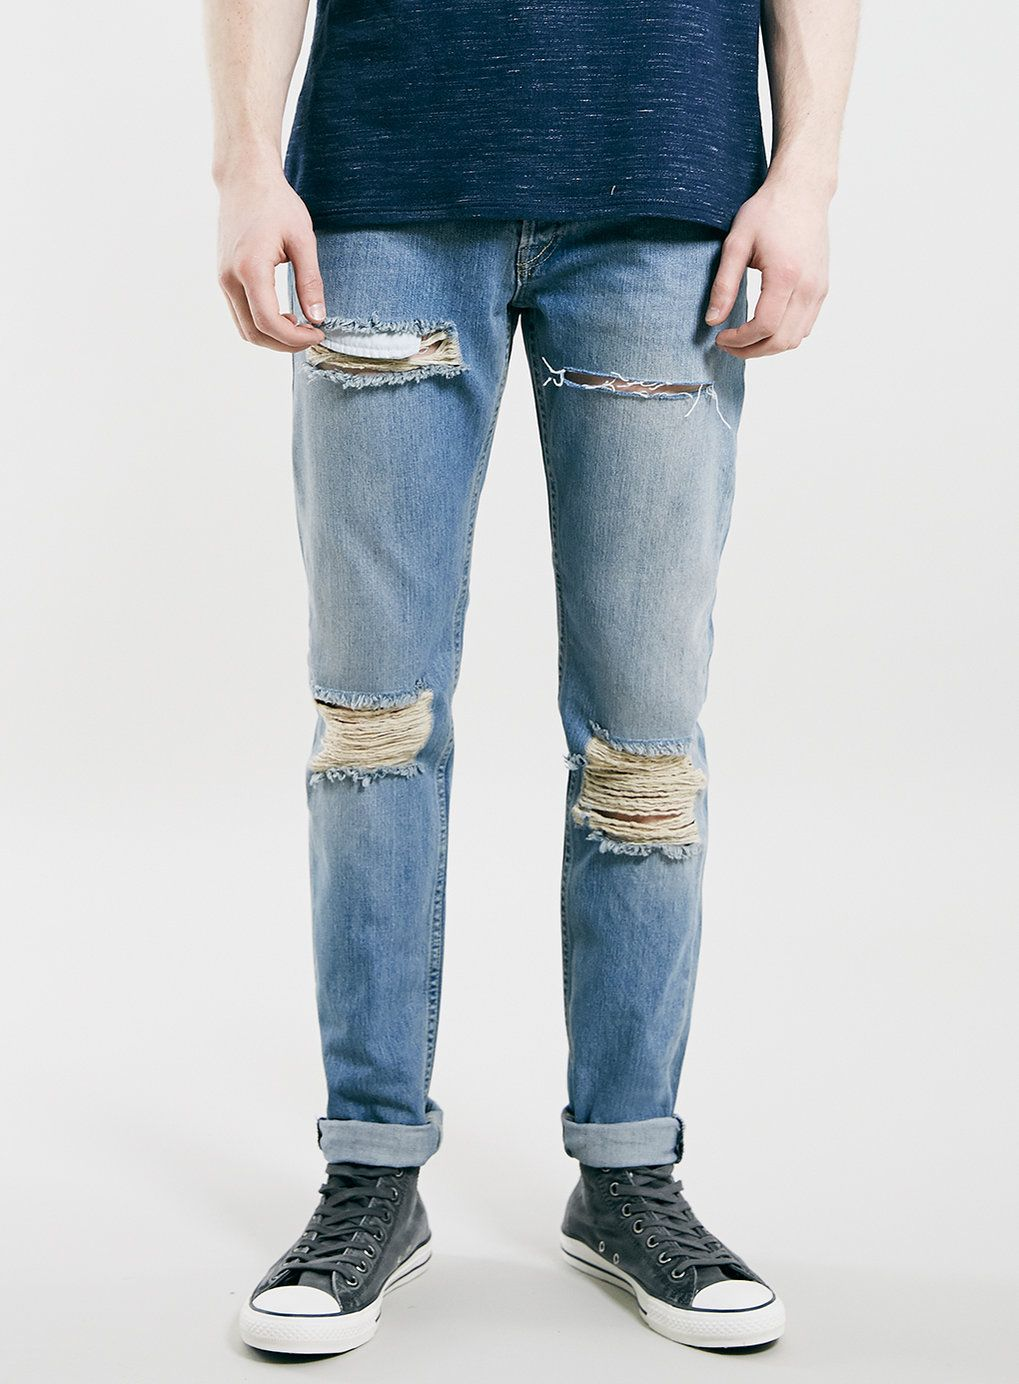 38b0a5cadf1 Light Blue Blow Out Knee Classic Skinny Jeans - Topman | Fashion ...